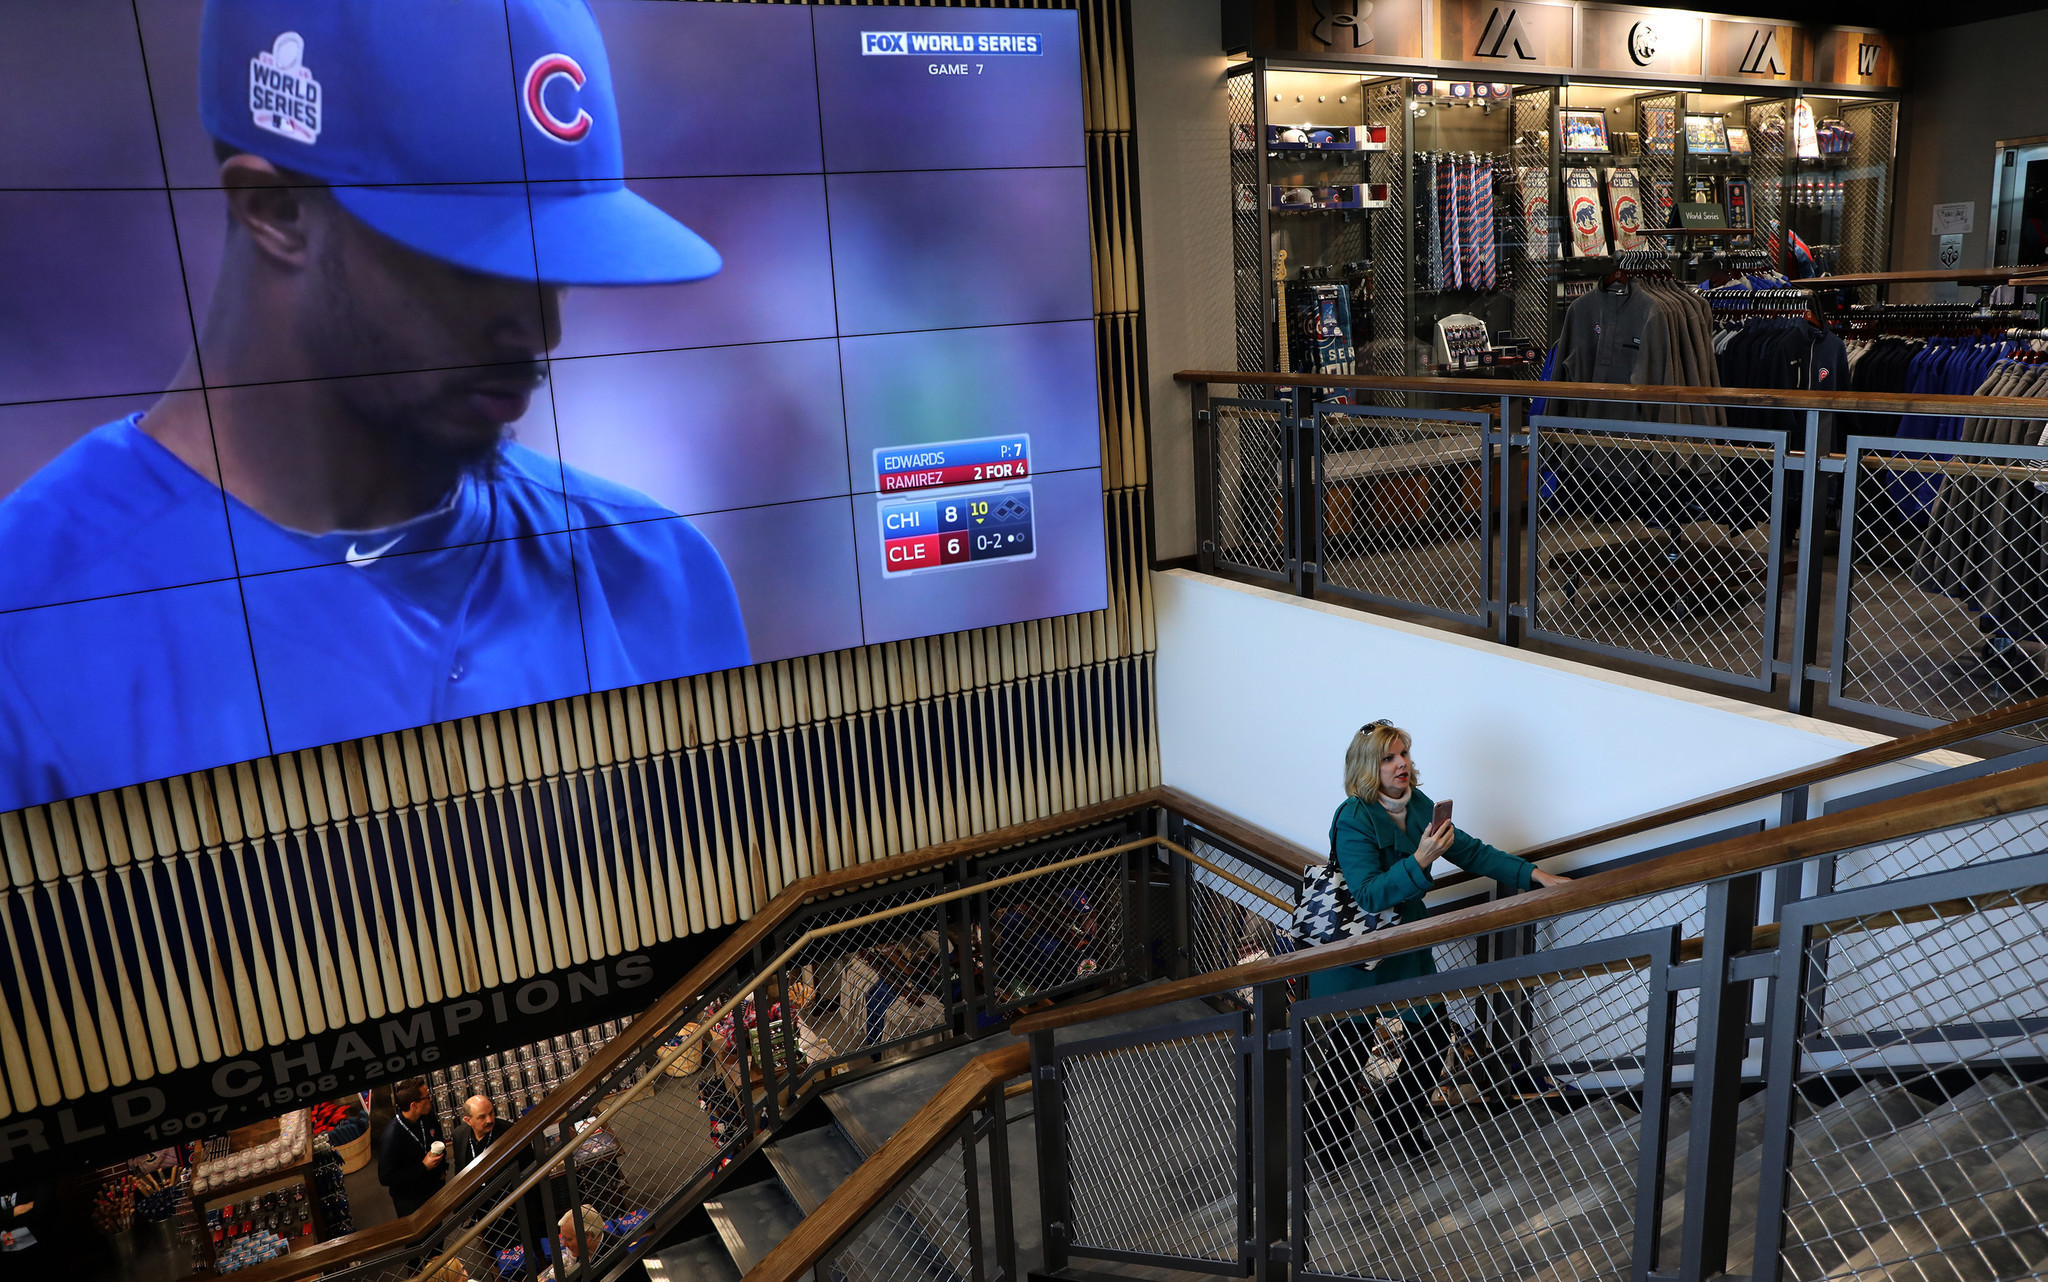 New Cubs Store to open at Wrigley Field - Chicago Tribune